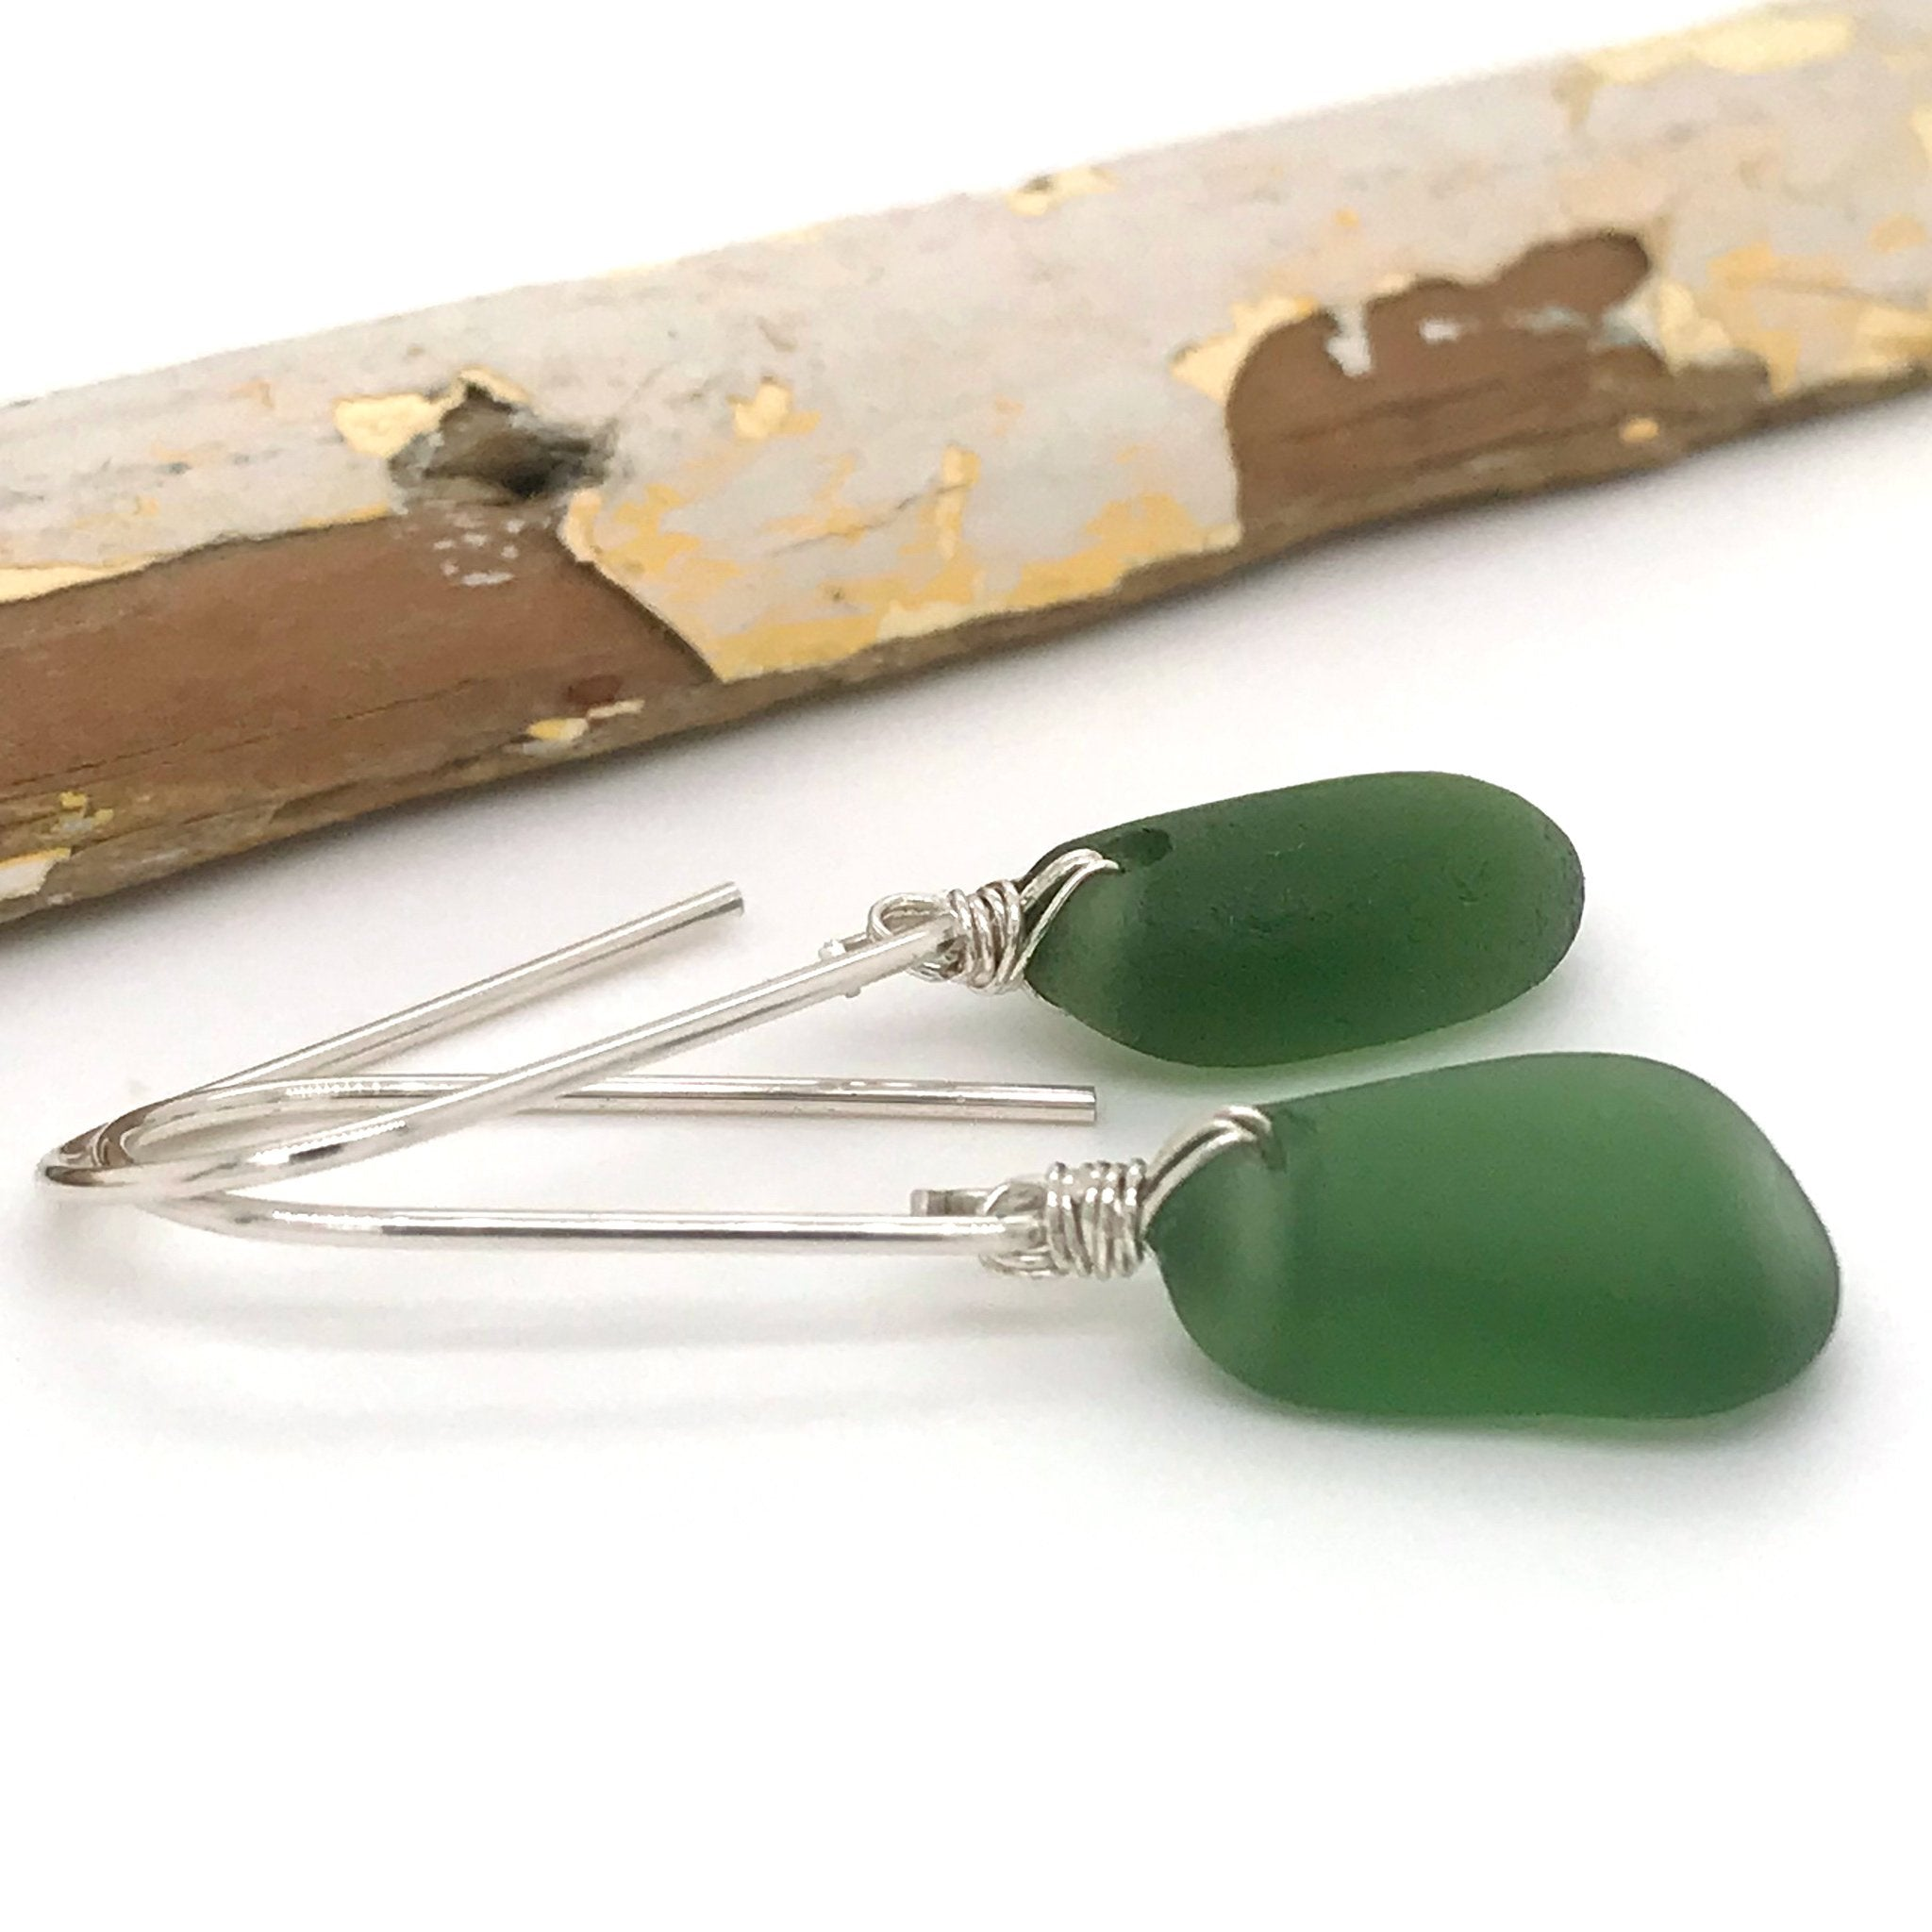 green seaglass earrings on sterling silver short drops kriket broadhurst jewellery